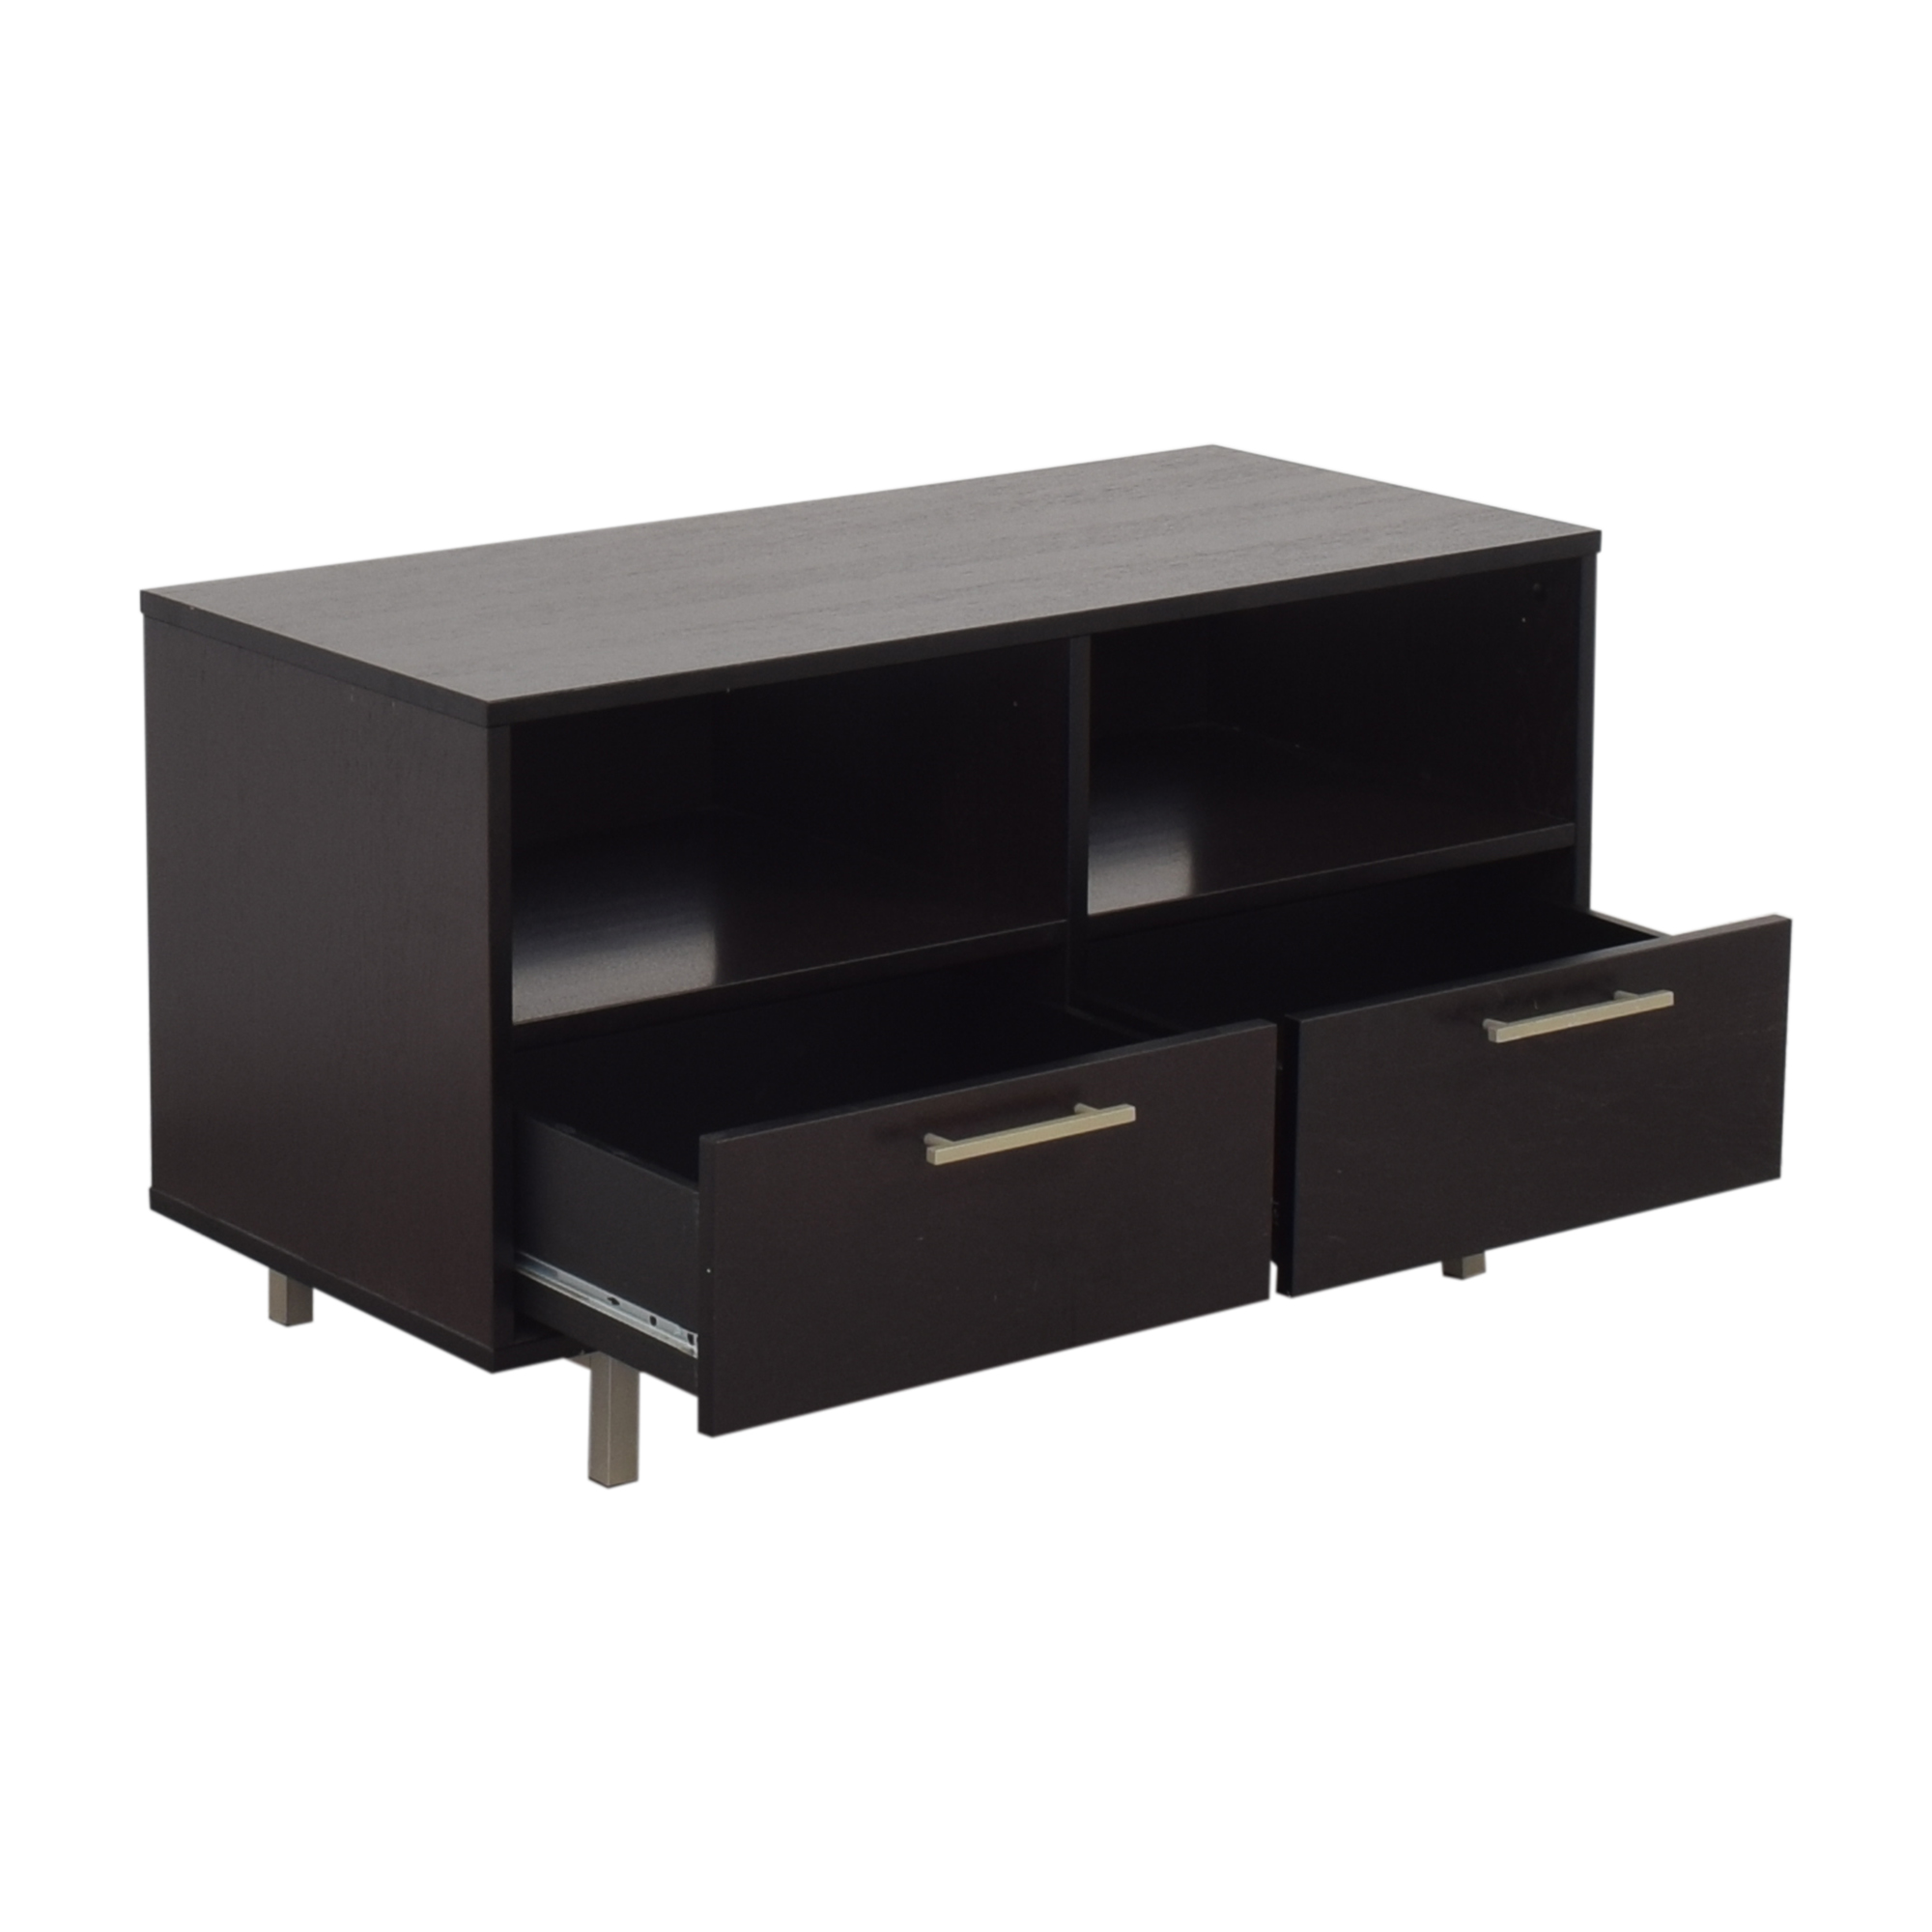 Crate & Barrel Crate & Barrel Two Drawer Media Stand ct